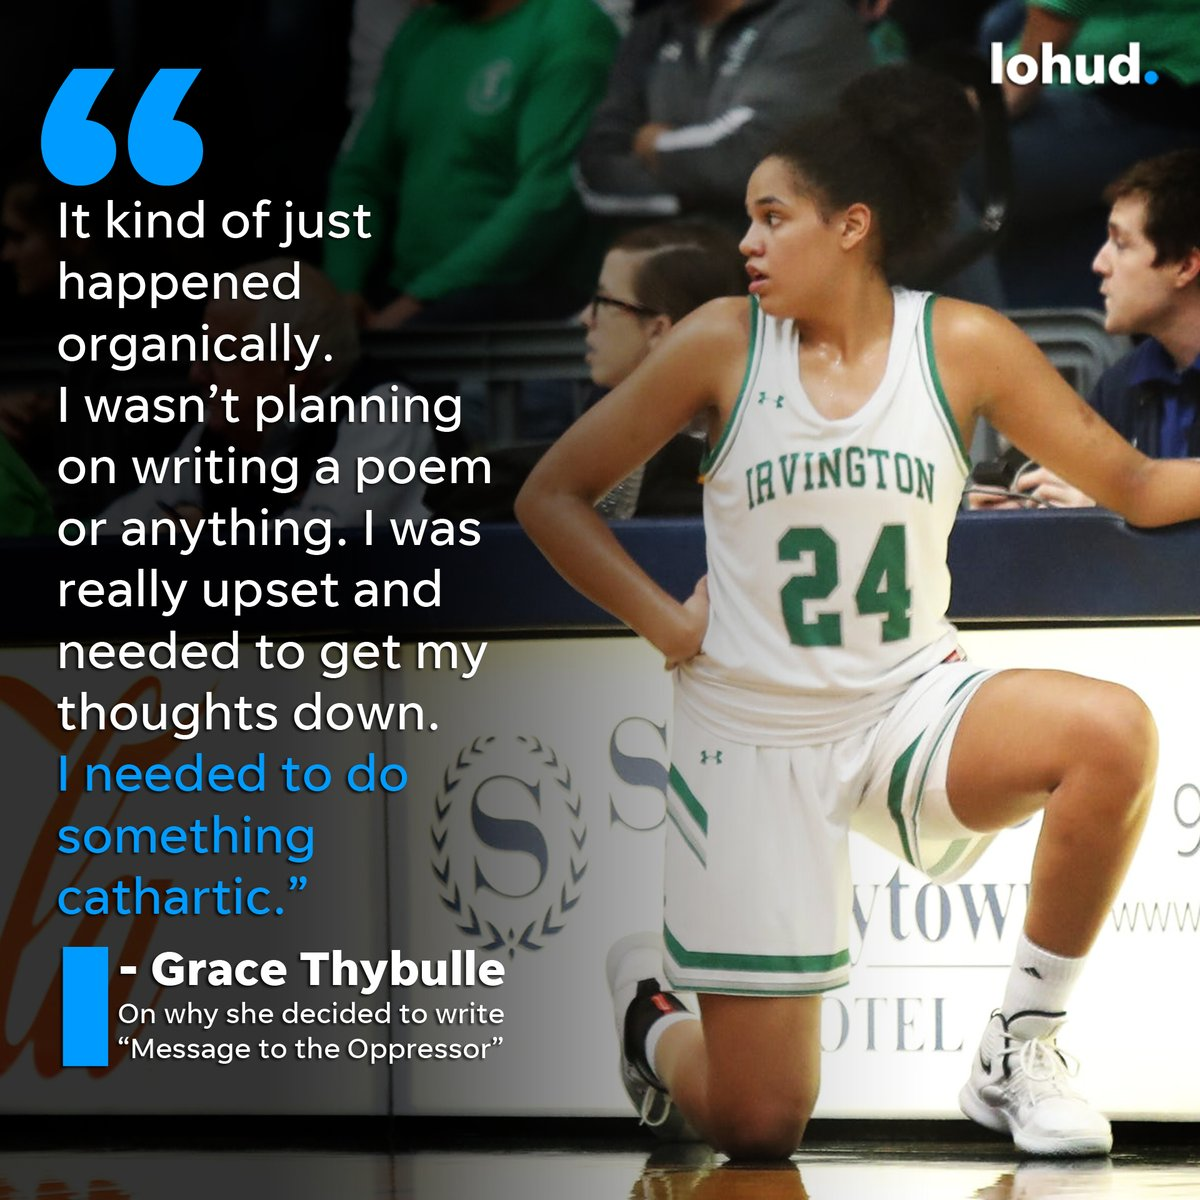 Why won't anyone hear us. They look but they never listen They tell us we're wrong Then put us in prison  That is an excerpt from a poem written by Irvington basketball standout Grace Thybulle: https://t.co/DzQbr8wZda  @hoopsmbd @lohudinsider @IrvingtonAthlet @gracethybulle https://t.co/PXBjXFy1iW